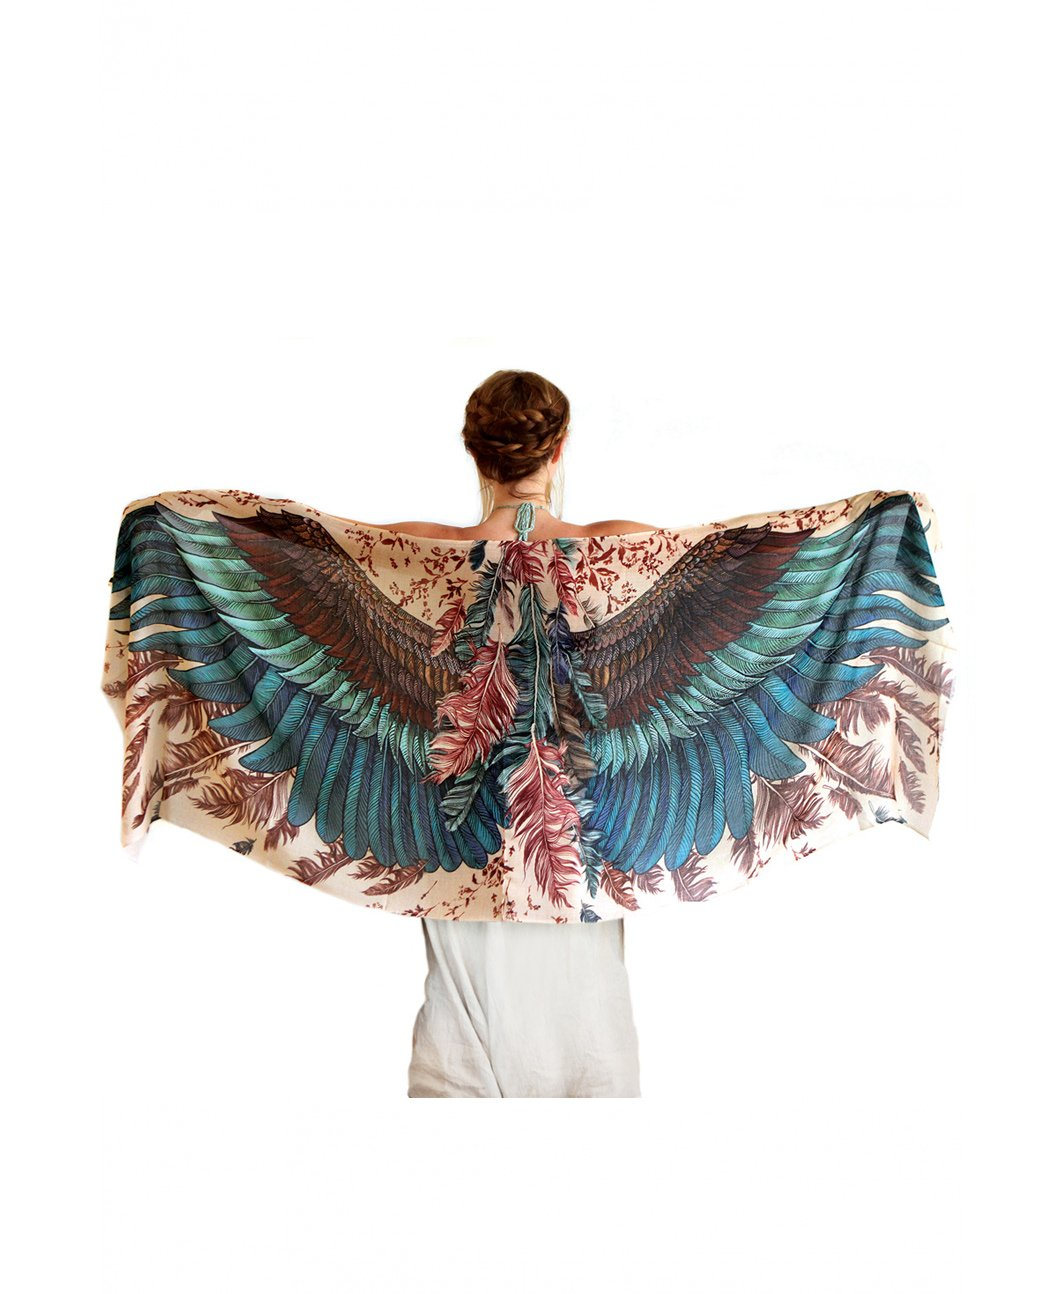 Bird Feathers Scarf, Silk & Cashmere Exotic Feathers Women's Scarf, Wrap by Shovava (Image #3)